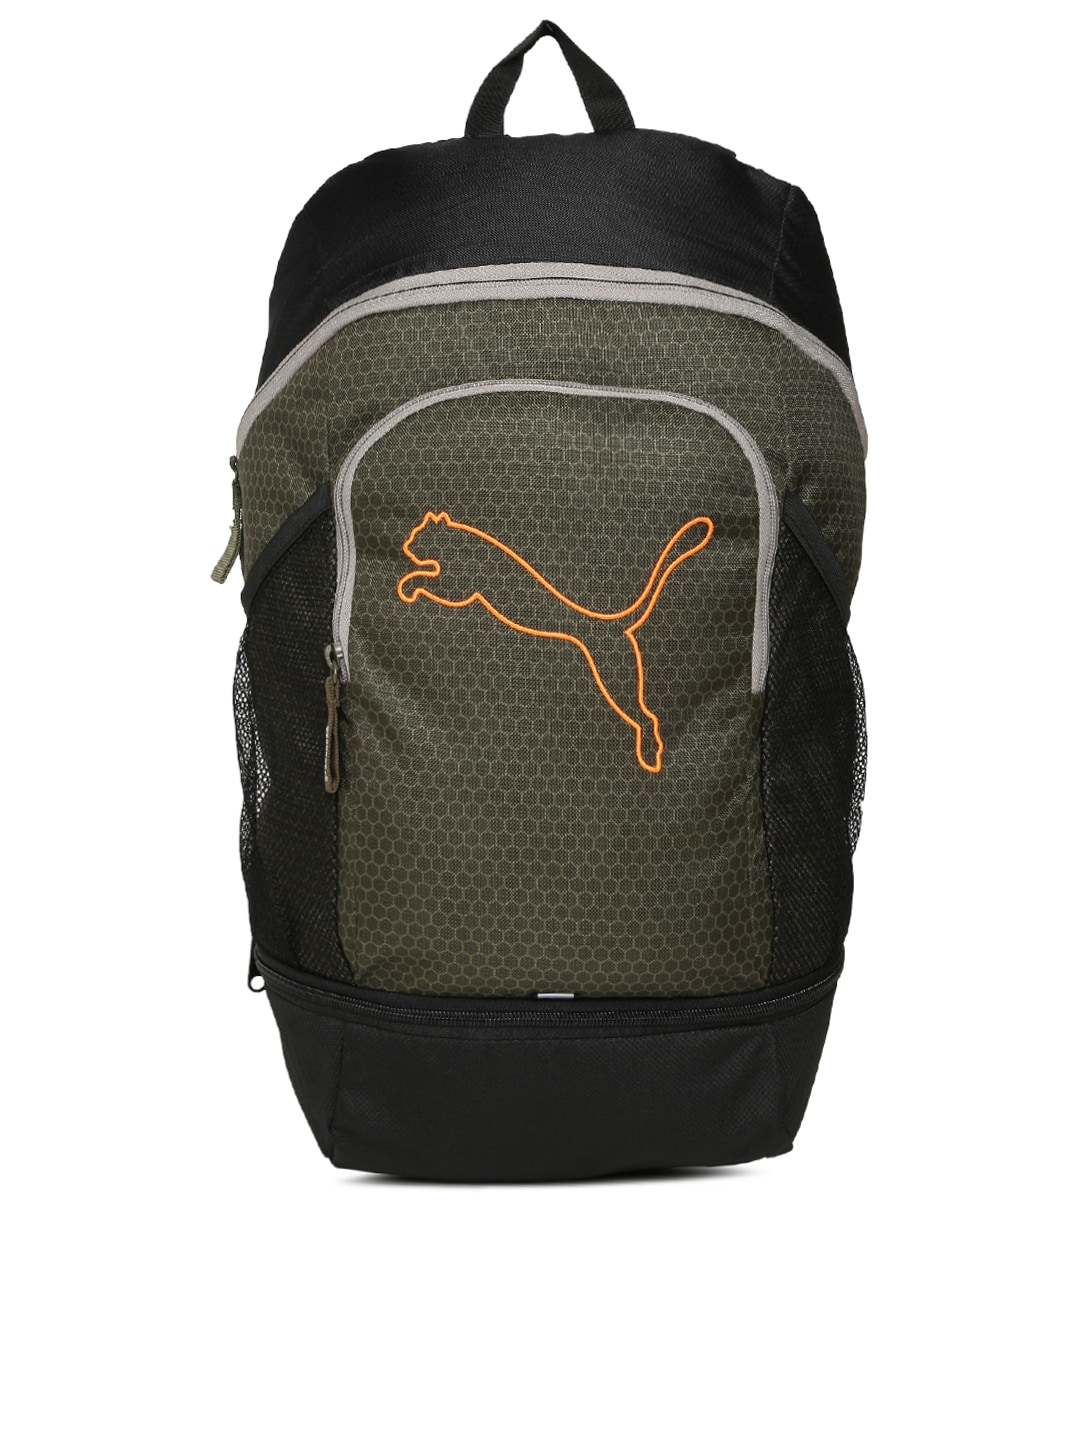 Puma Backpack Laptop Bags - Buy Puma Backpack Laptop Bags online in India 558af31bc3c55